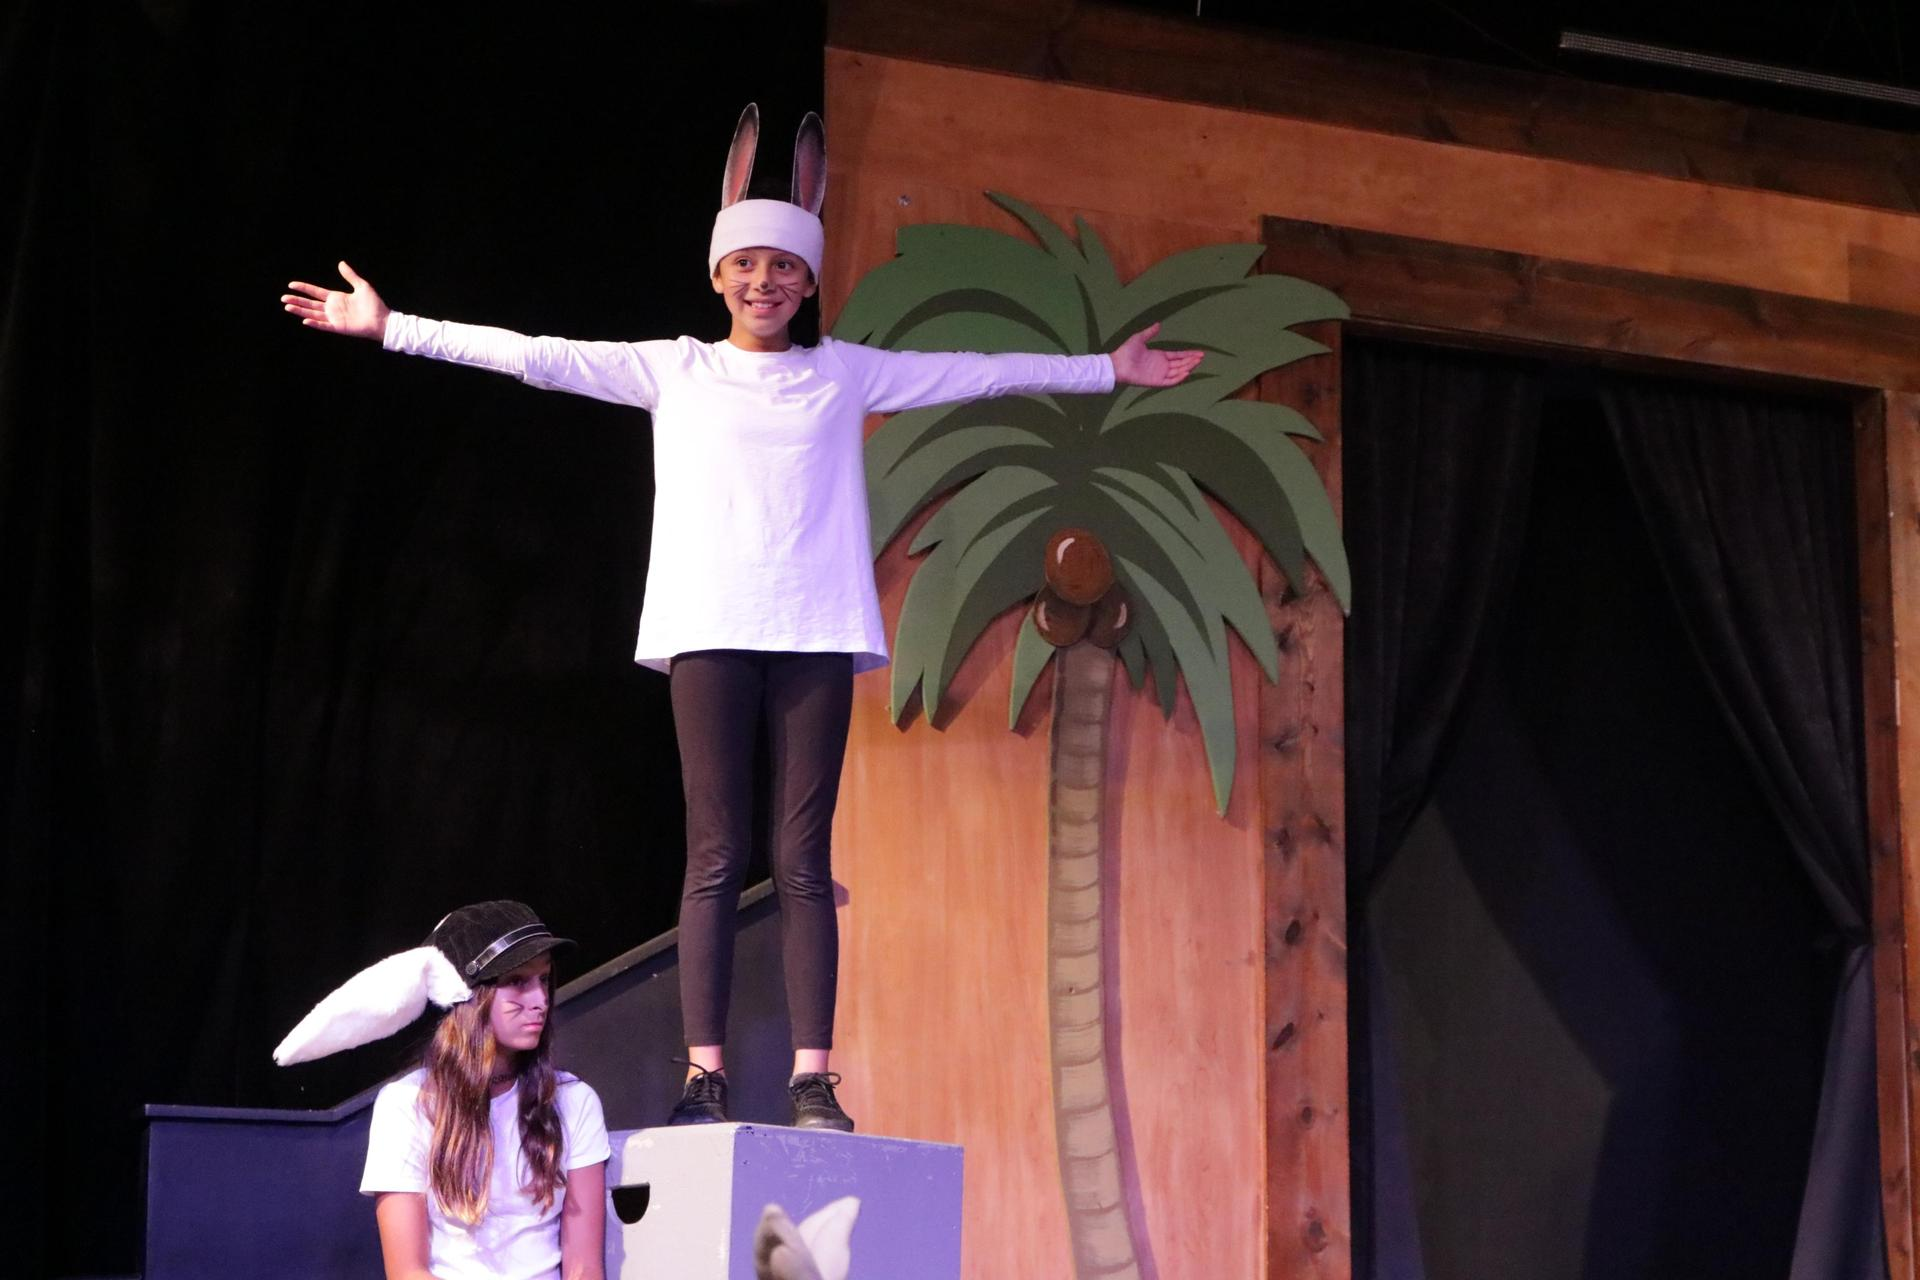 Sixth grader in a bunny costume stands on stage